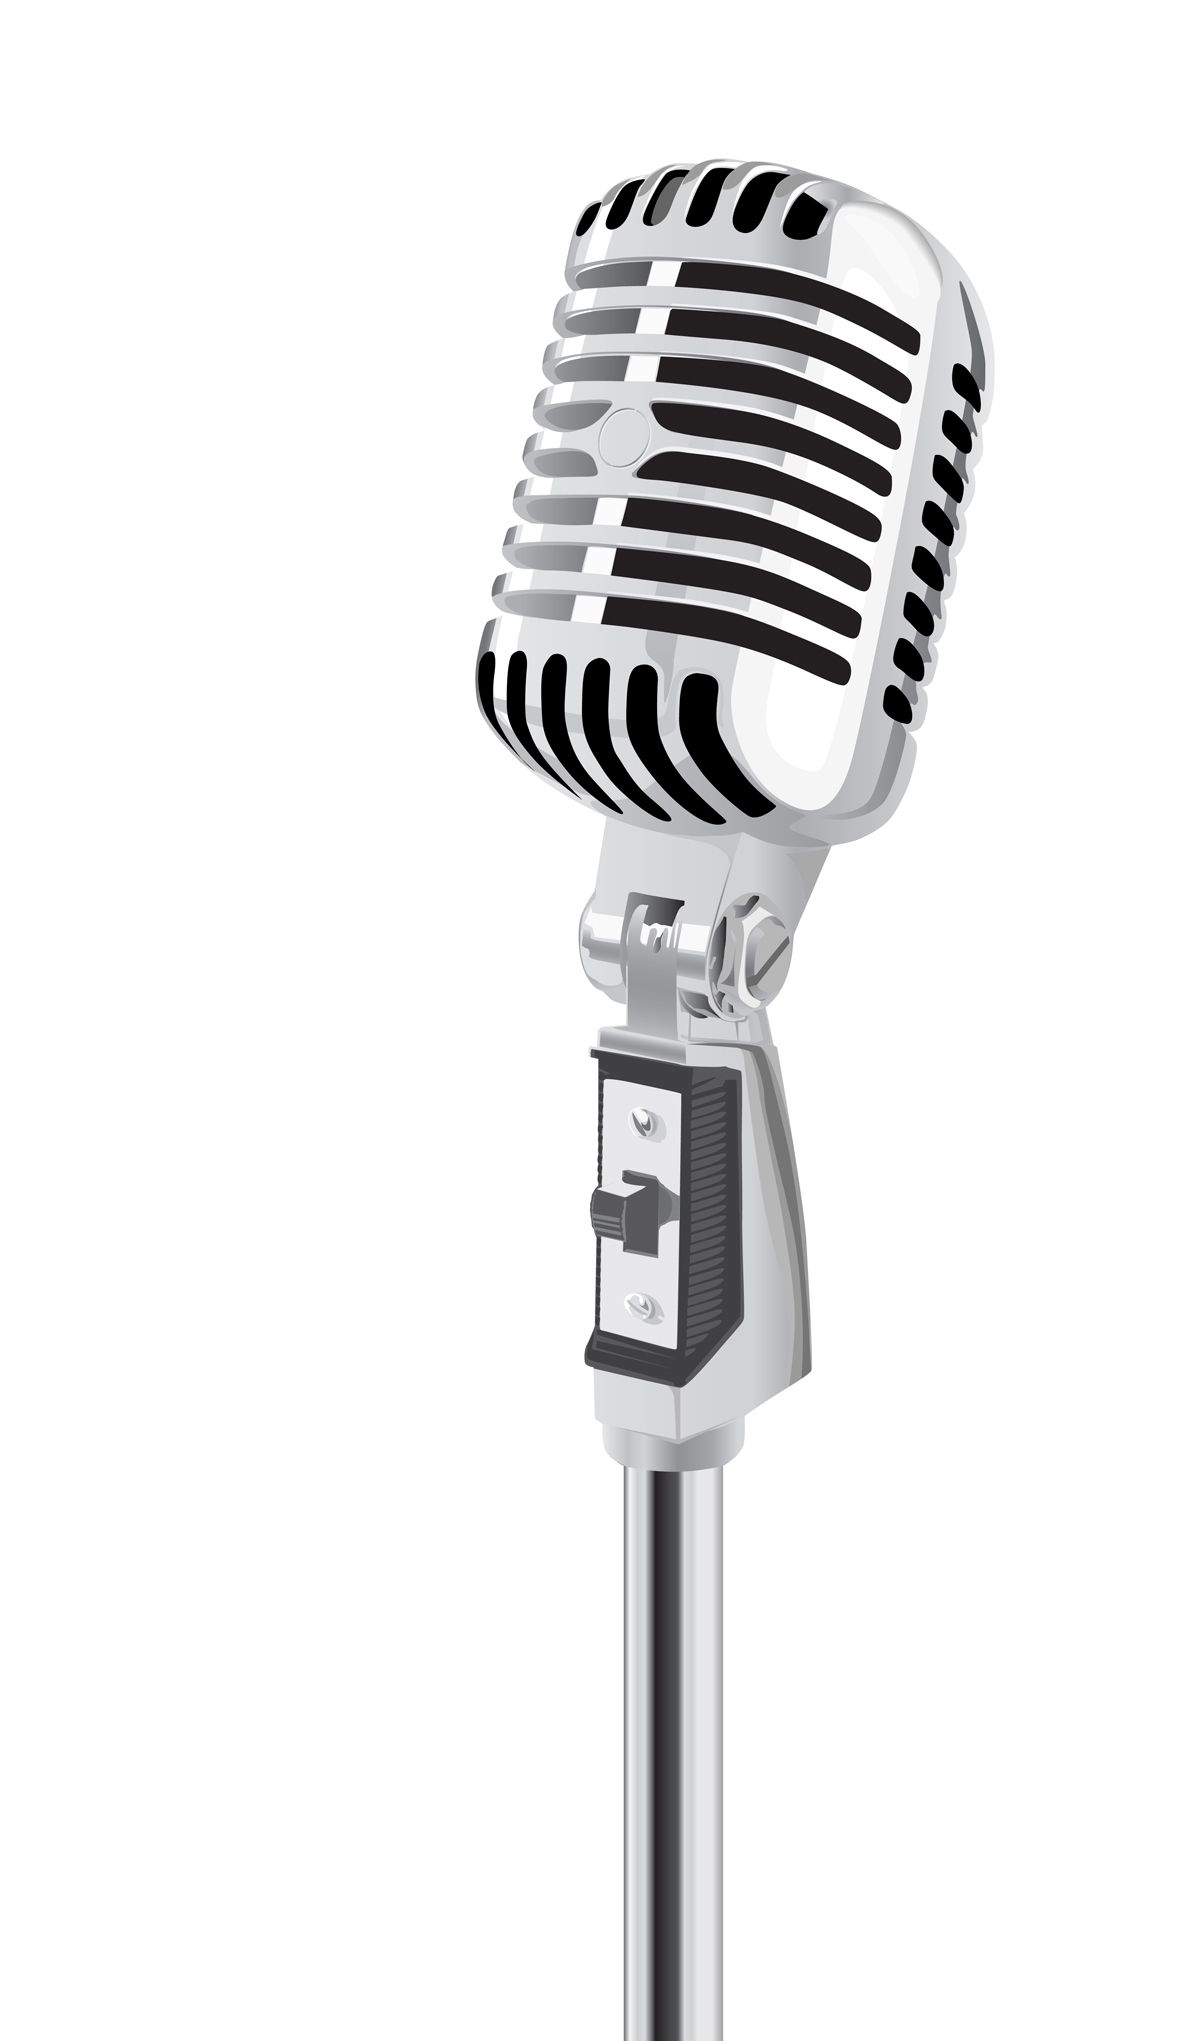 Drawn microphone old style Clipart Microphone of #2790 Free